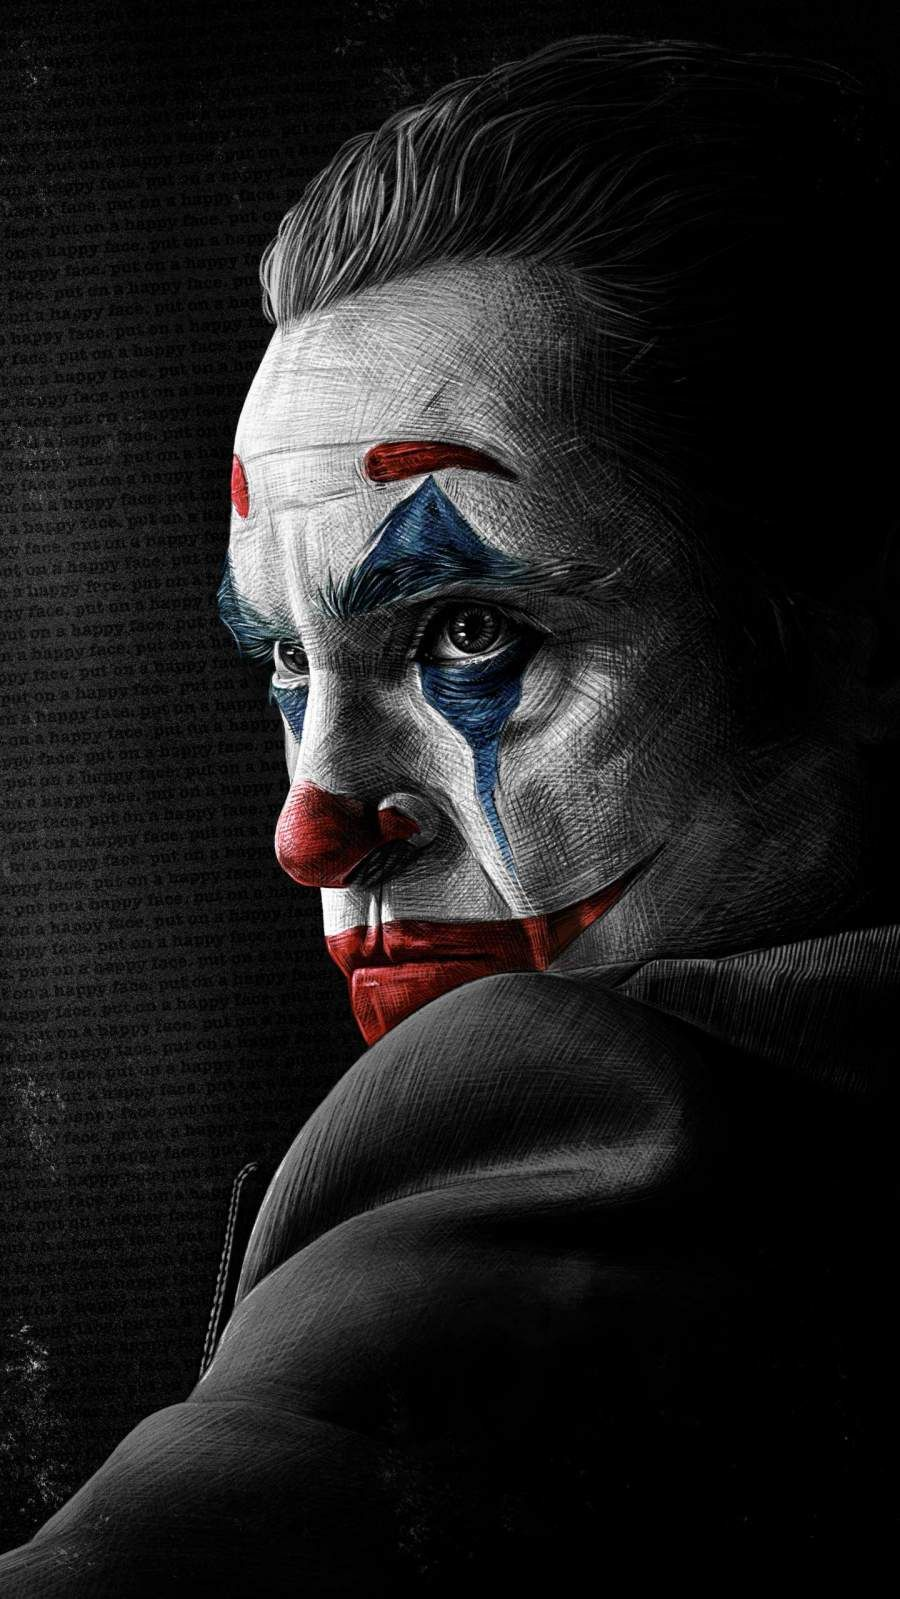 Masked Guy Iphone Wallpaper Joker Iphone Wallpaper Joker Poster Joker Images